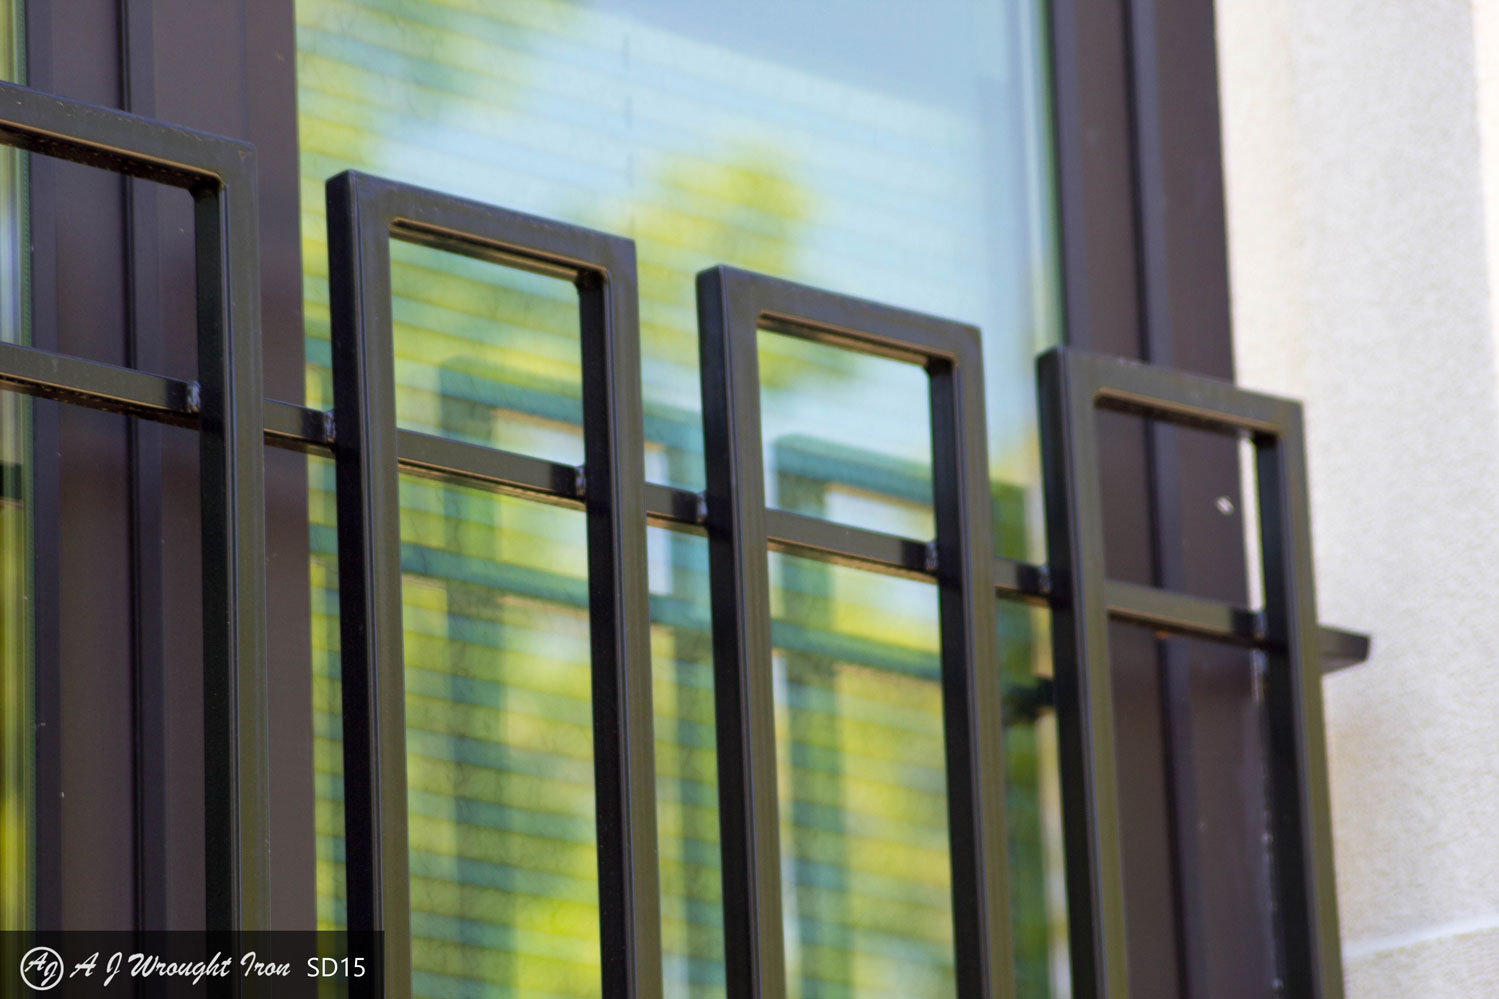 Modern/Contemporary Exterior Window Bars and Railings - AJ ... on Exterior Grill Design id=11873